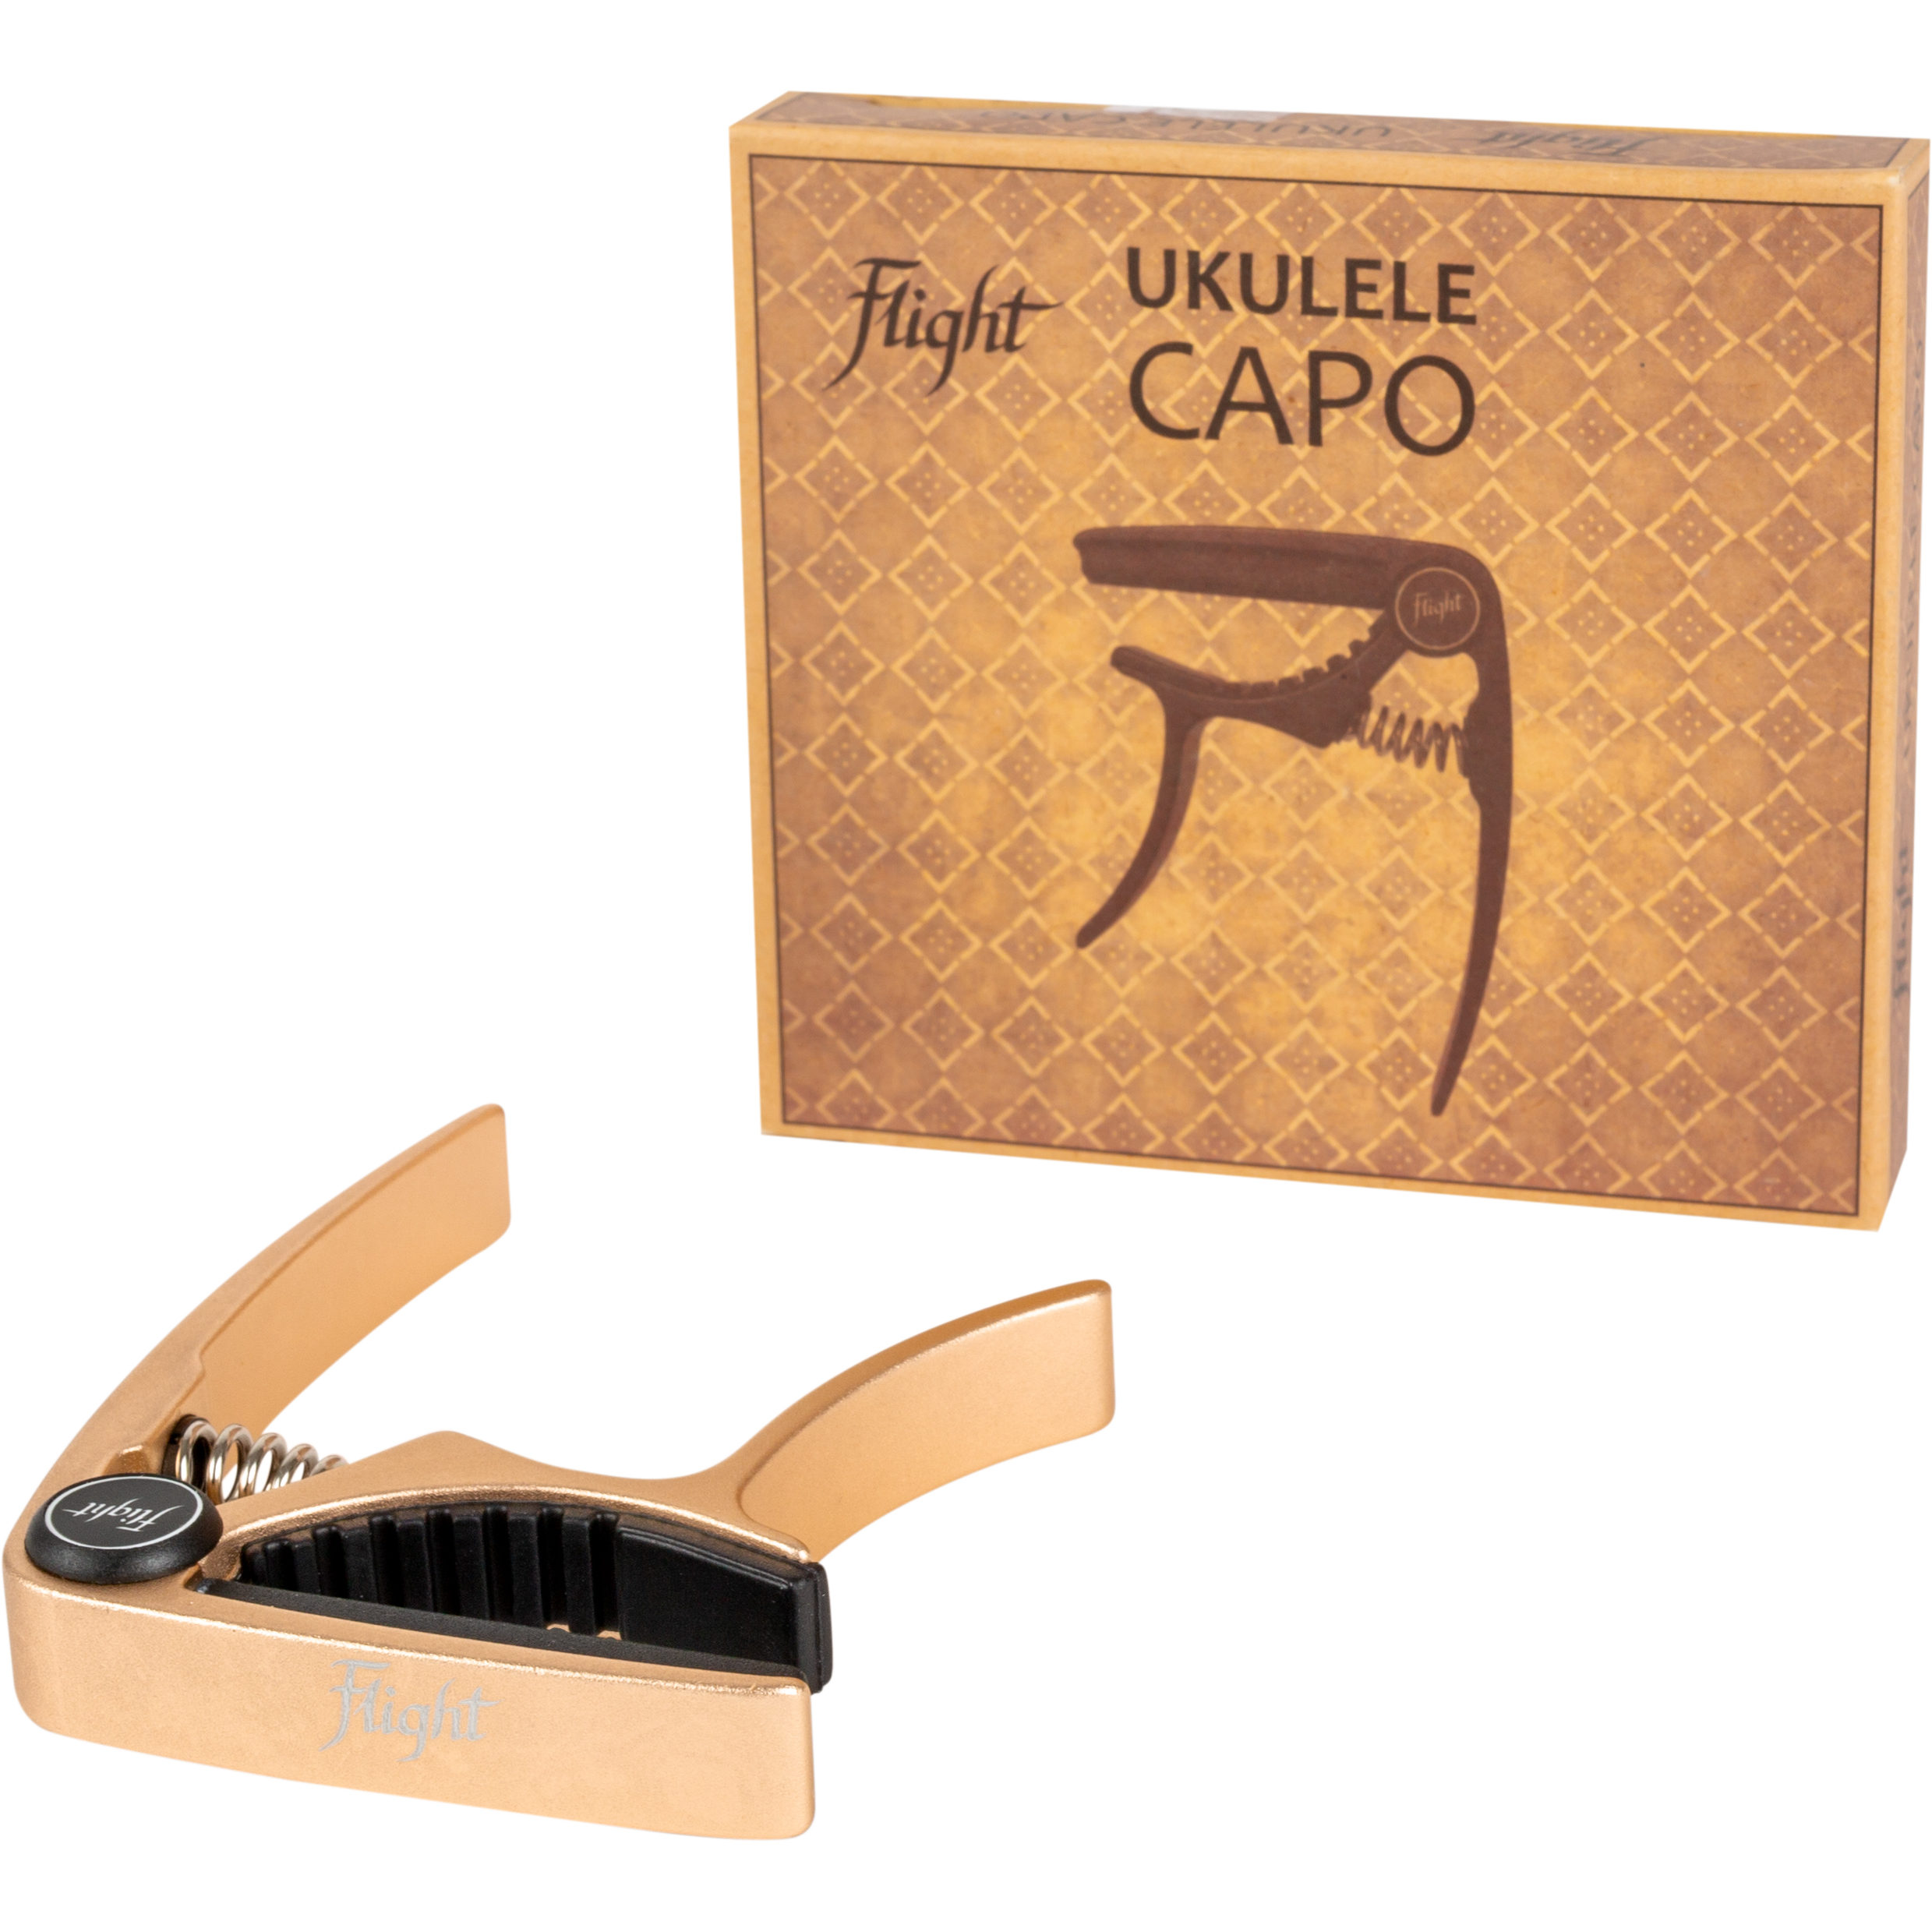 Flight FC-GD Gold Ukulele Capo